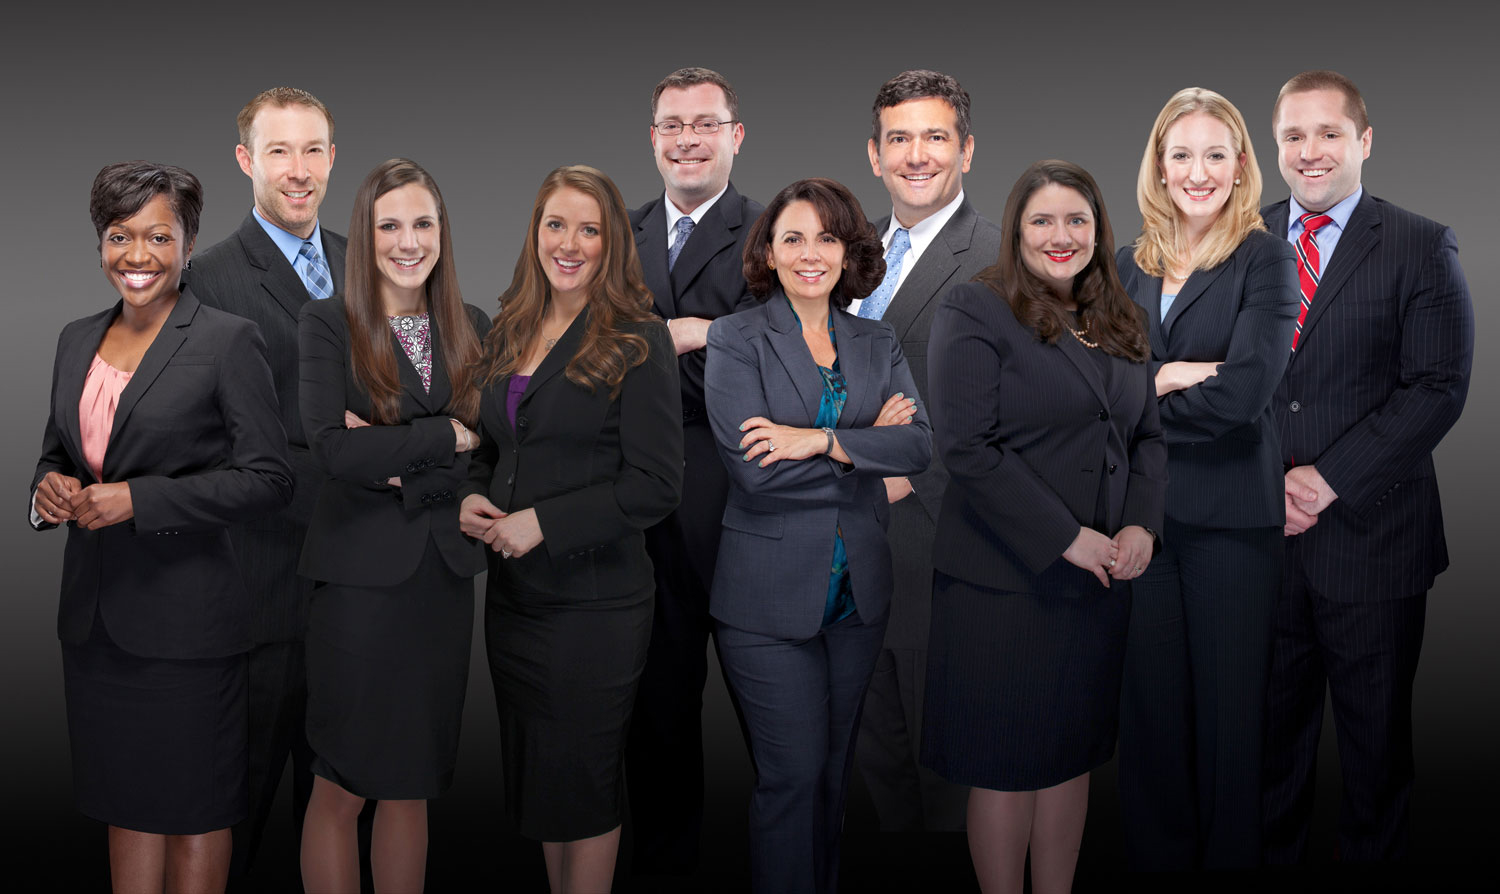 corporate group photography